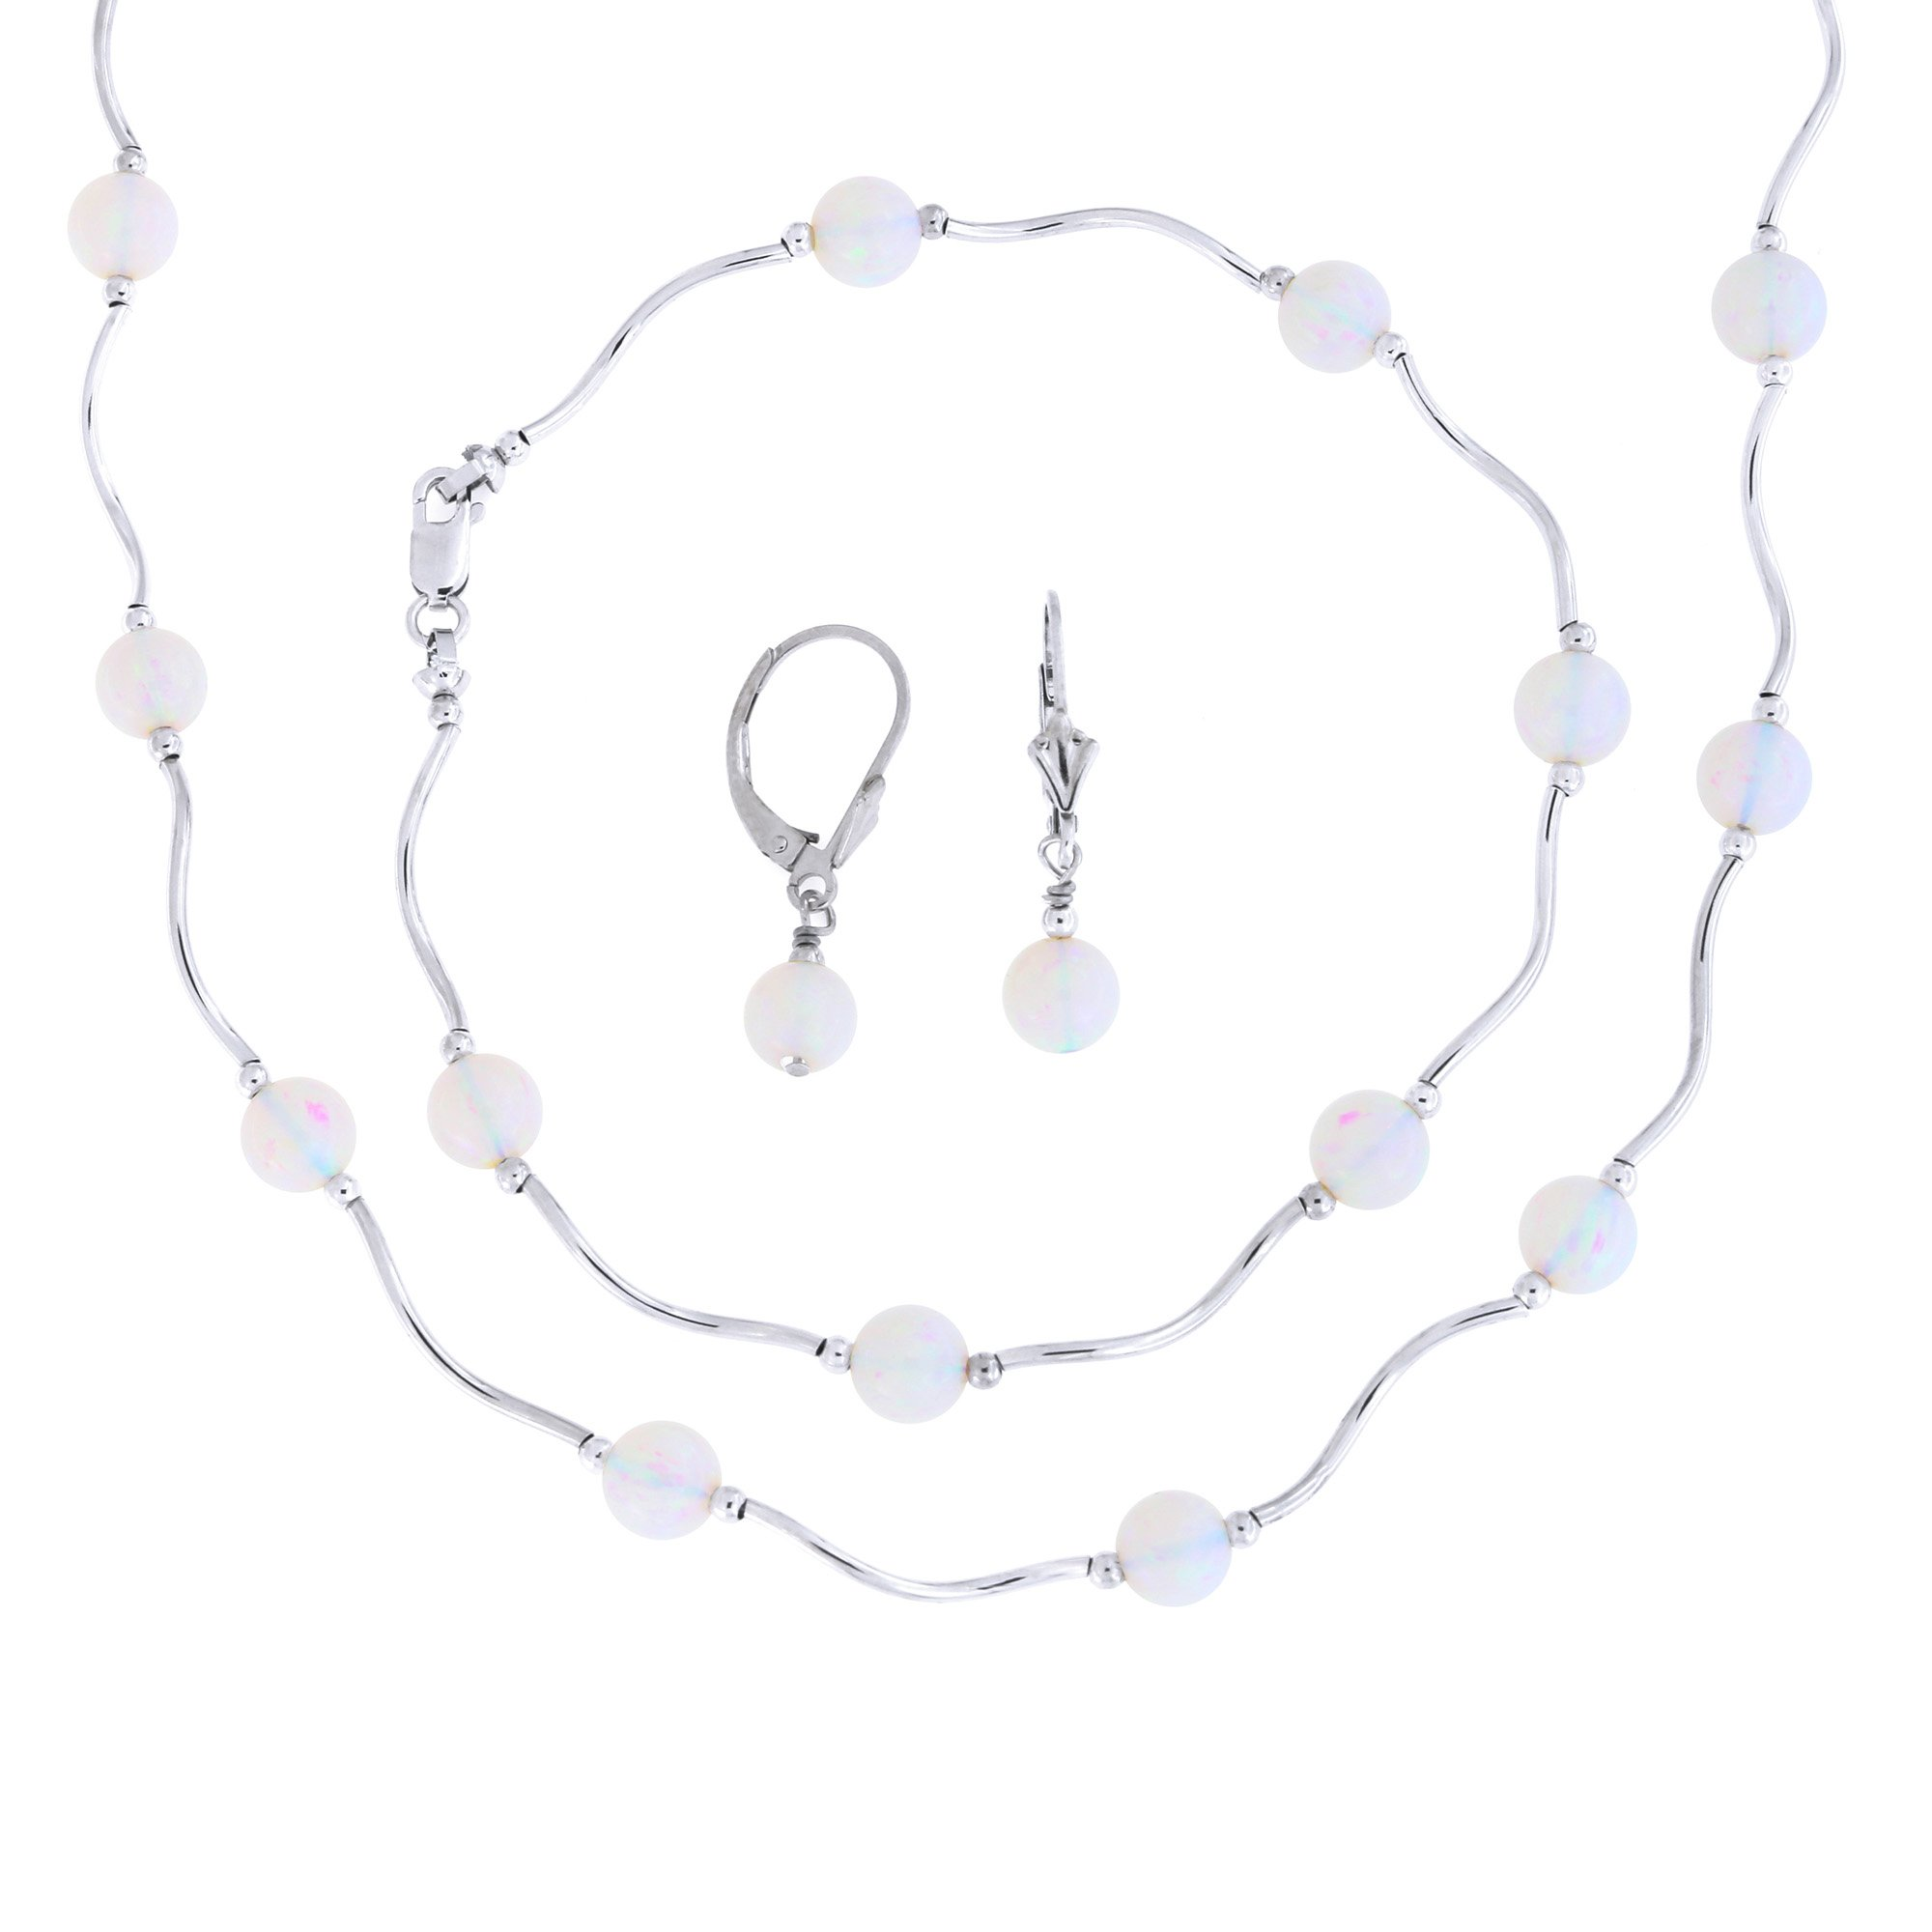 Sterling Silver Rhodium Plated 6mm Simulated White Opal Station Necklace, Earrings and Bracelet Set by